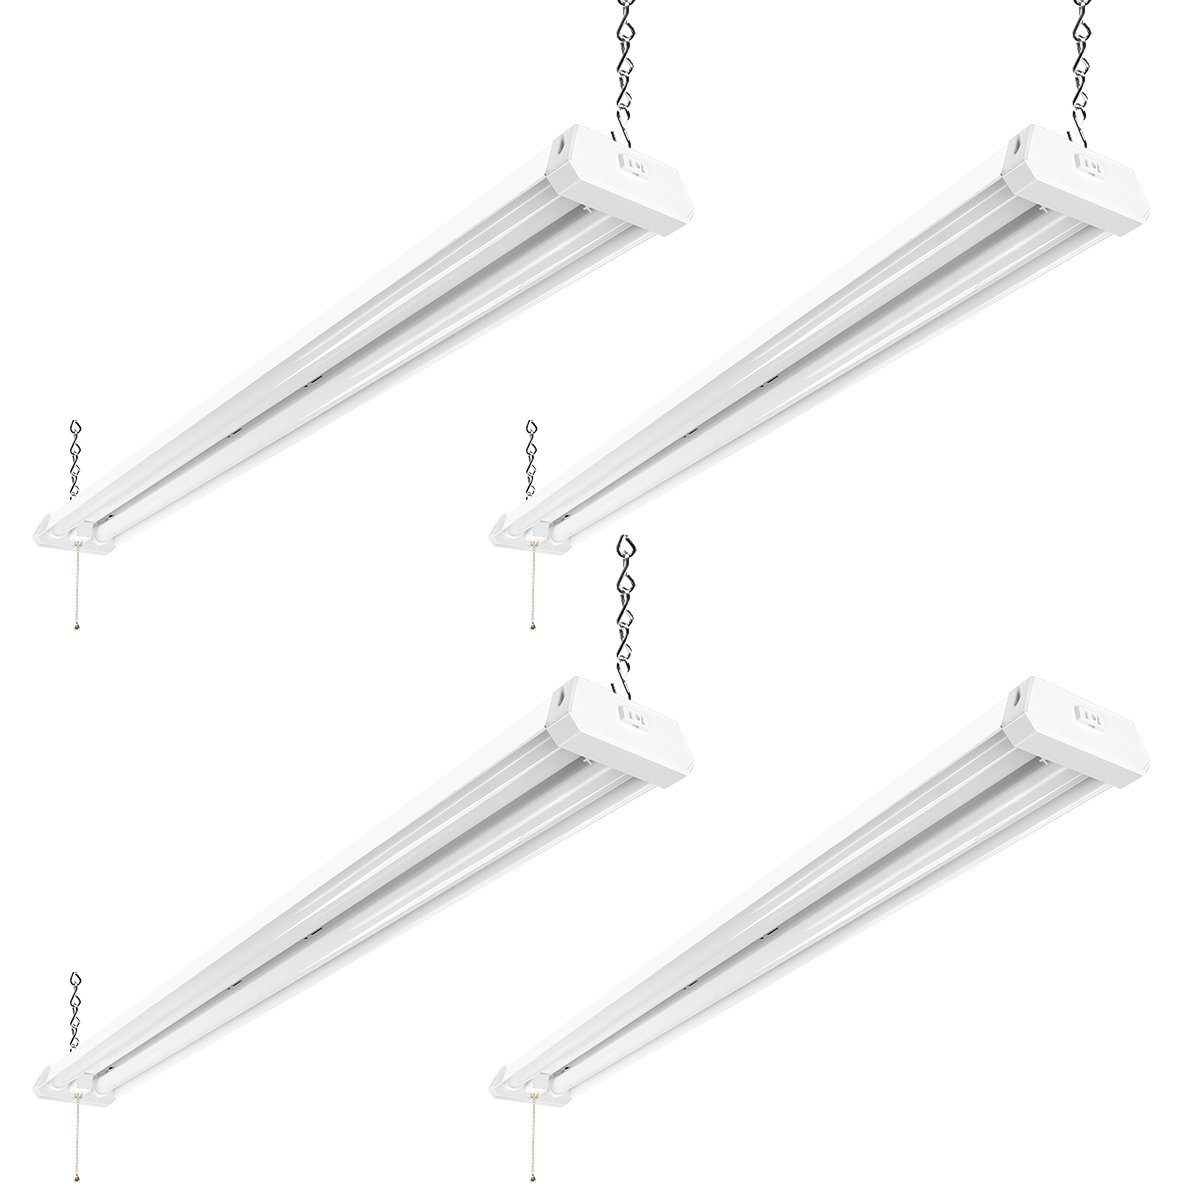 LE Linkable LED Utility Shop Light 4ft 42W Super Bright 4500 Lumens 5000K Daylight White ETL FCC Certified Linear Light Fixture Fits for Garage Workbench Warehouses Barns Factory Ceiling, 4 Pack